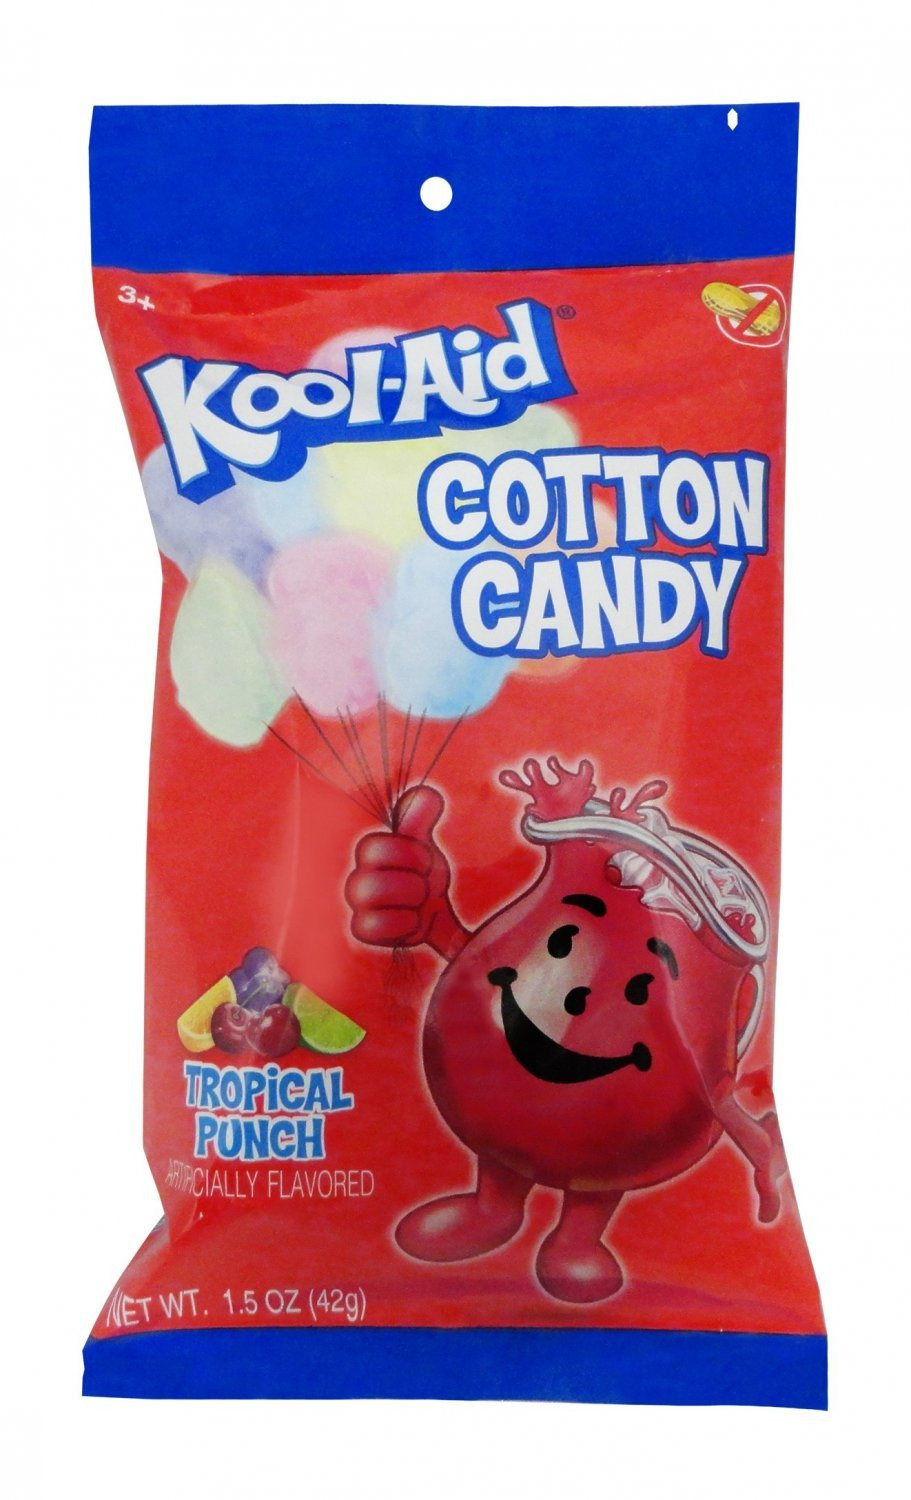 Kool-Aid Kool-Aid Cotton Candy Peg Bag